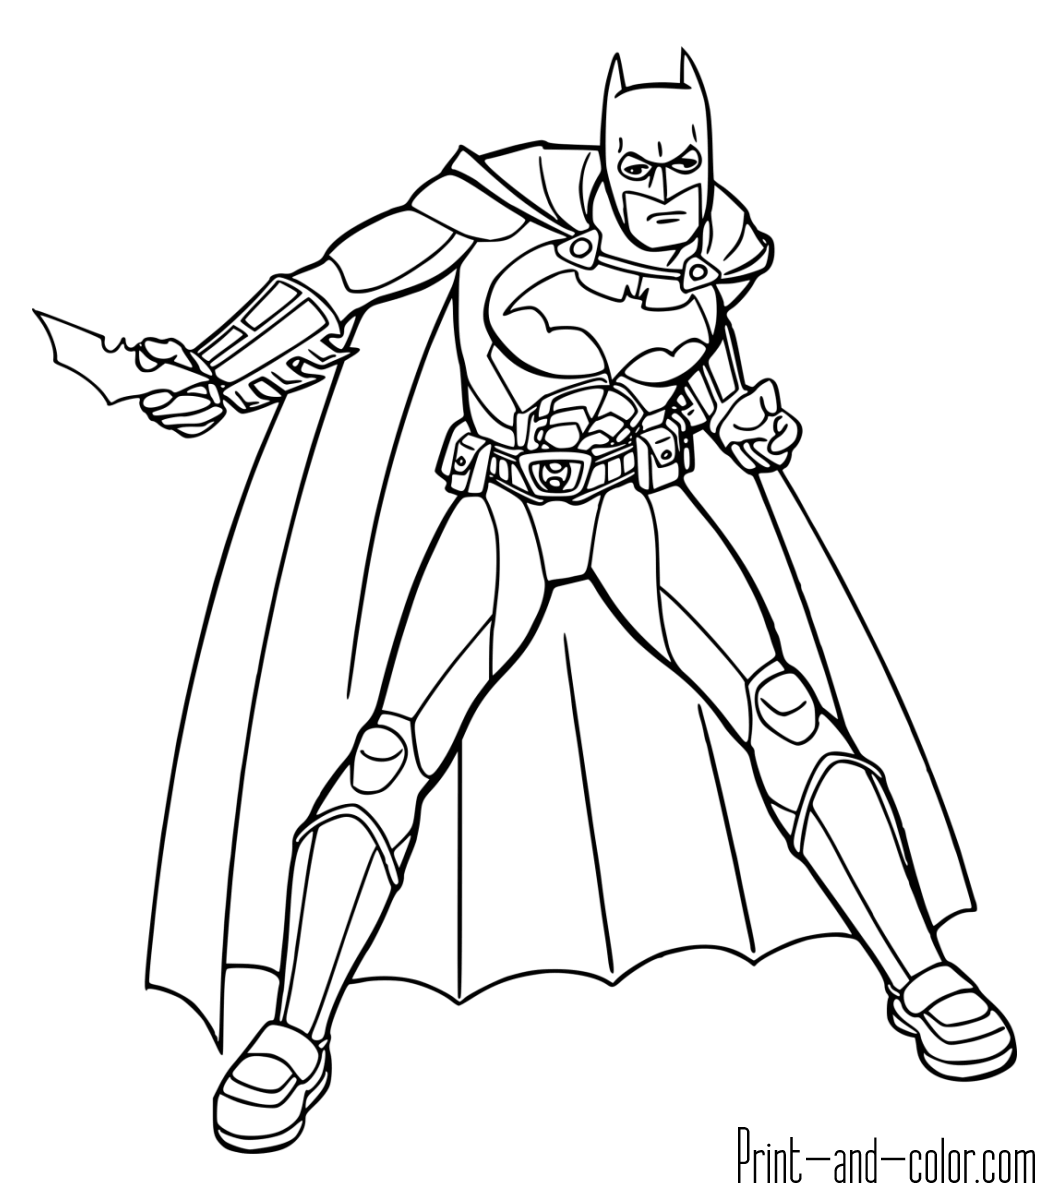 batman coloring pages Batmanloring pages print andlor png